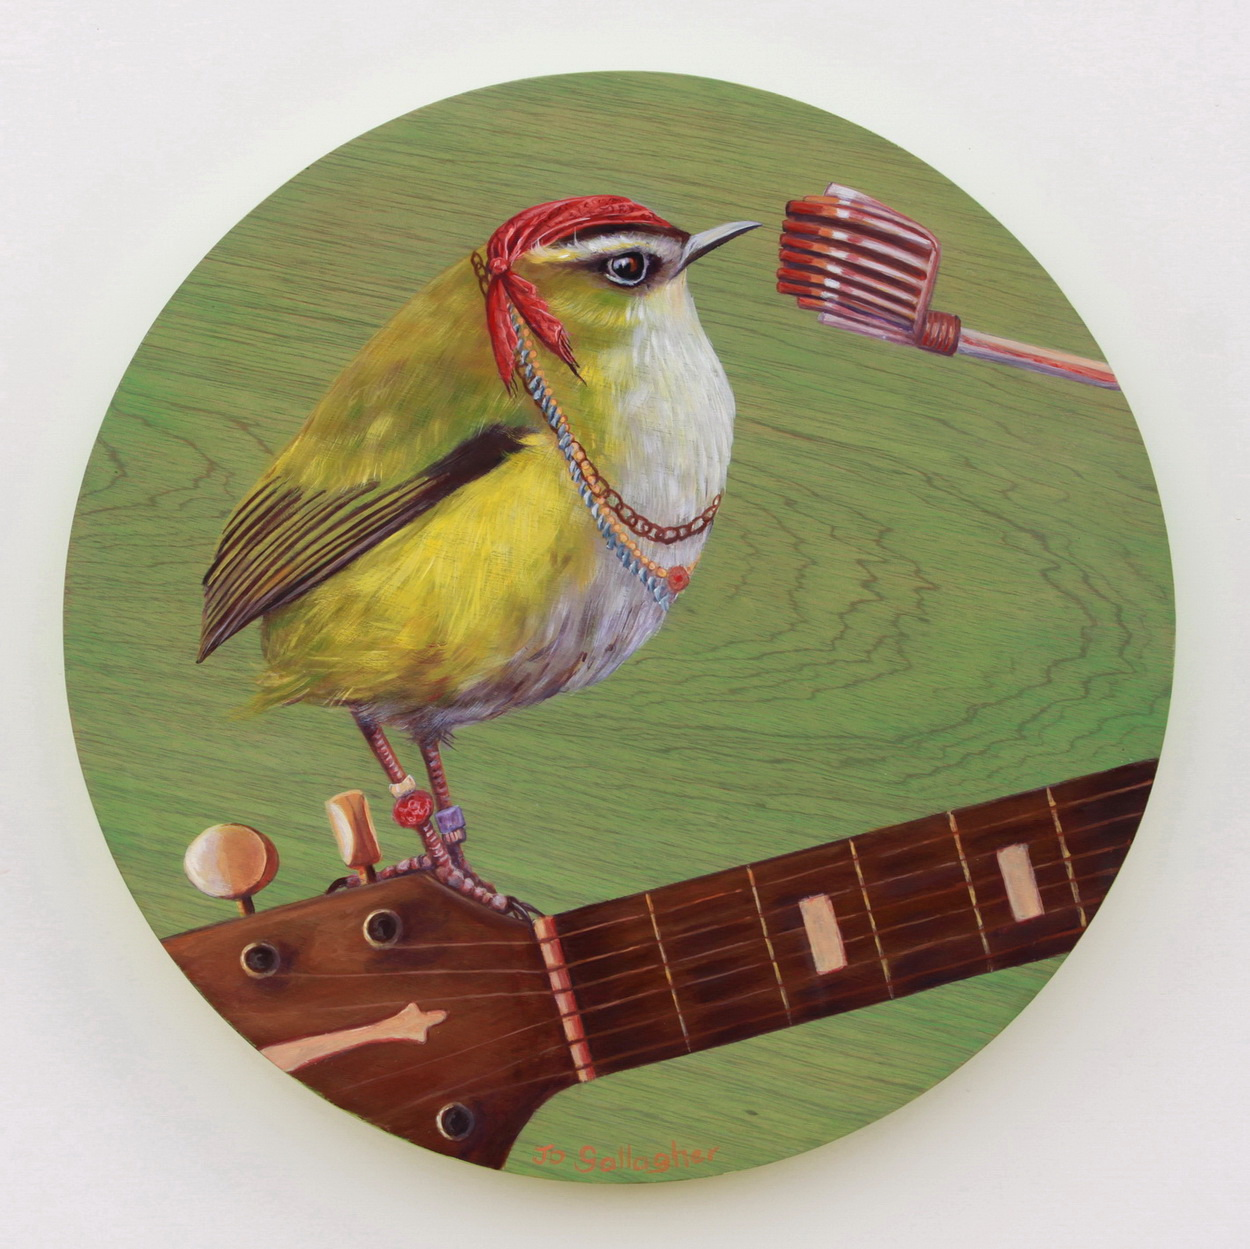 The Rock Wren 400mm acrylic on plywood board SOLD